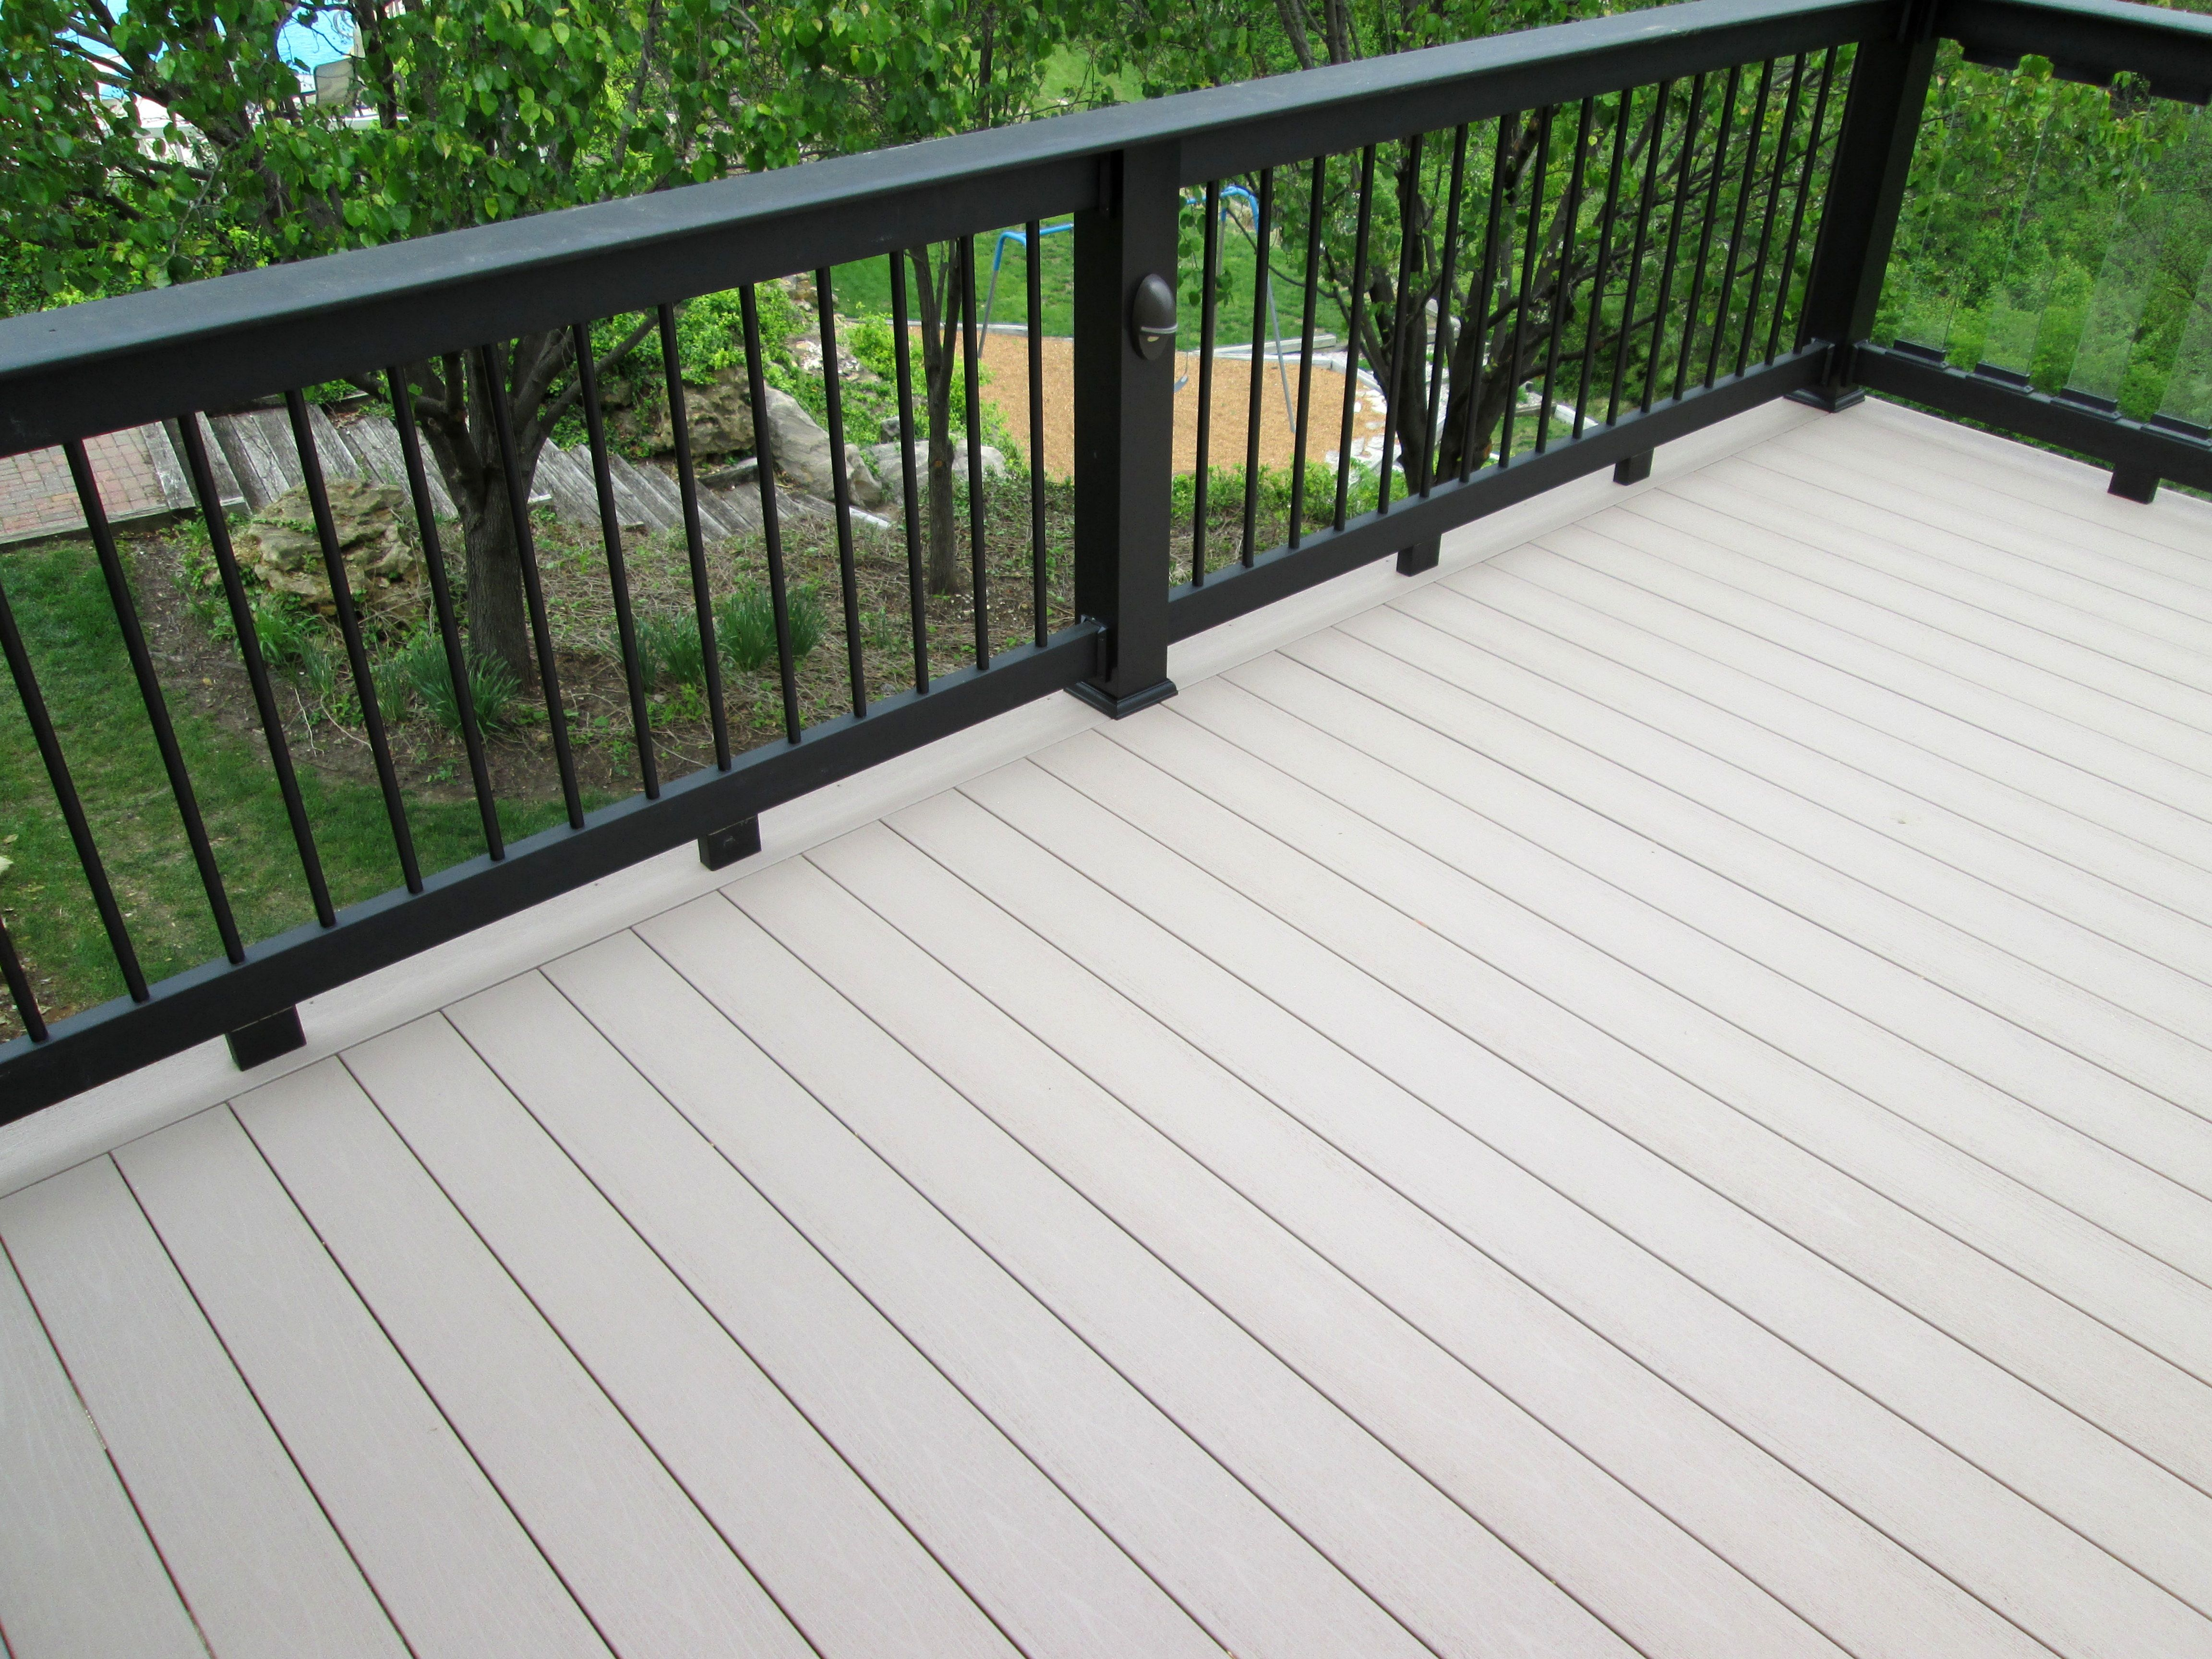 These Homeowners Chose Timbertech Terrain Decking And Evolutions Railing The Project Was Designed Wi Deck Designs Backyard Decks Backyard Outdoor Living Deck